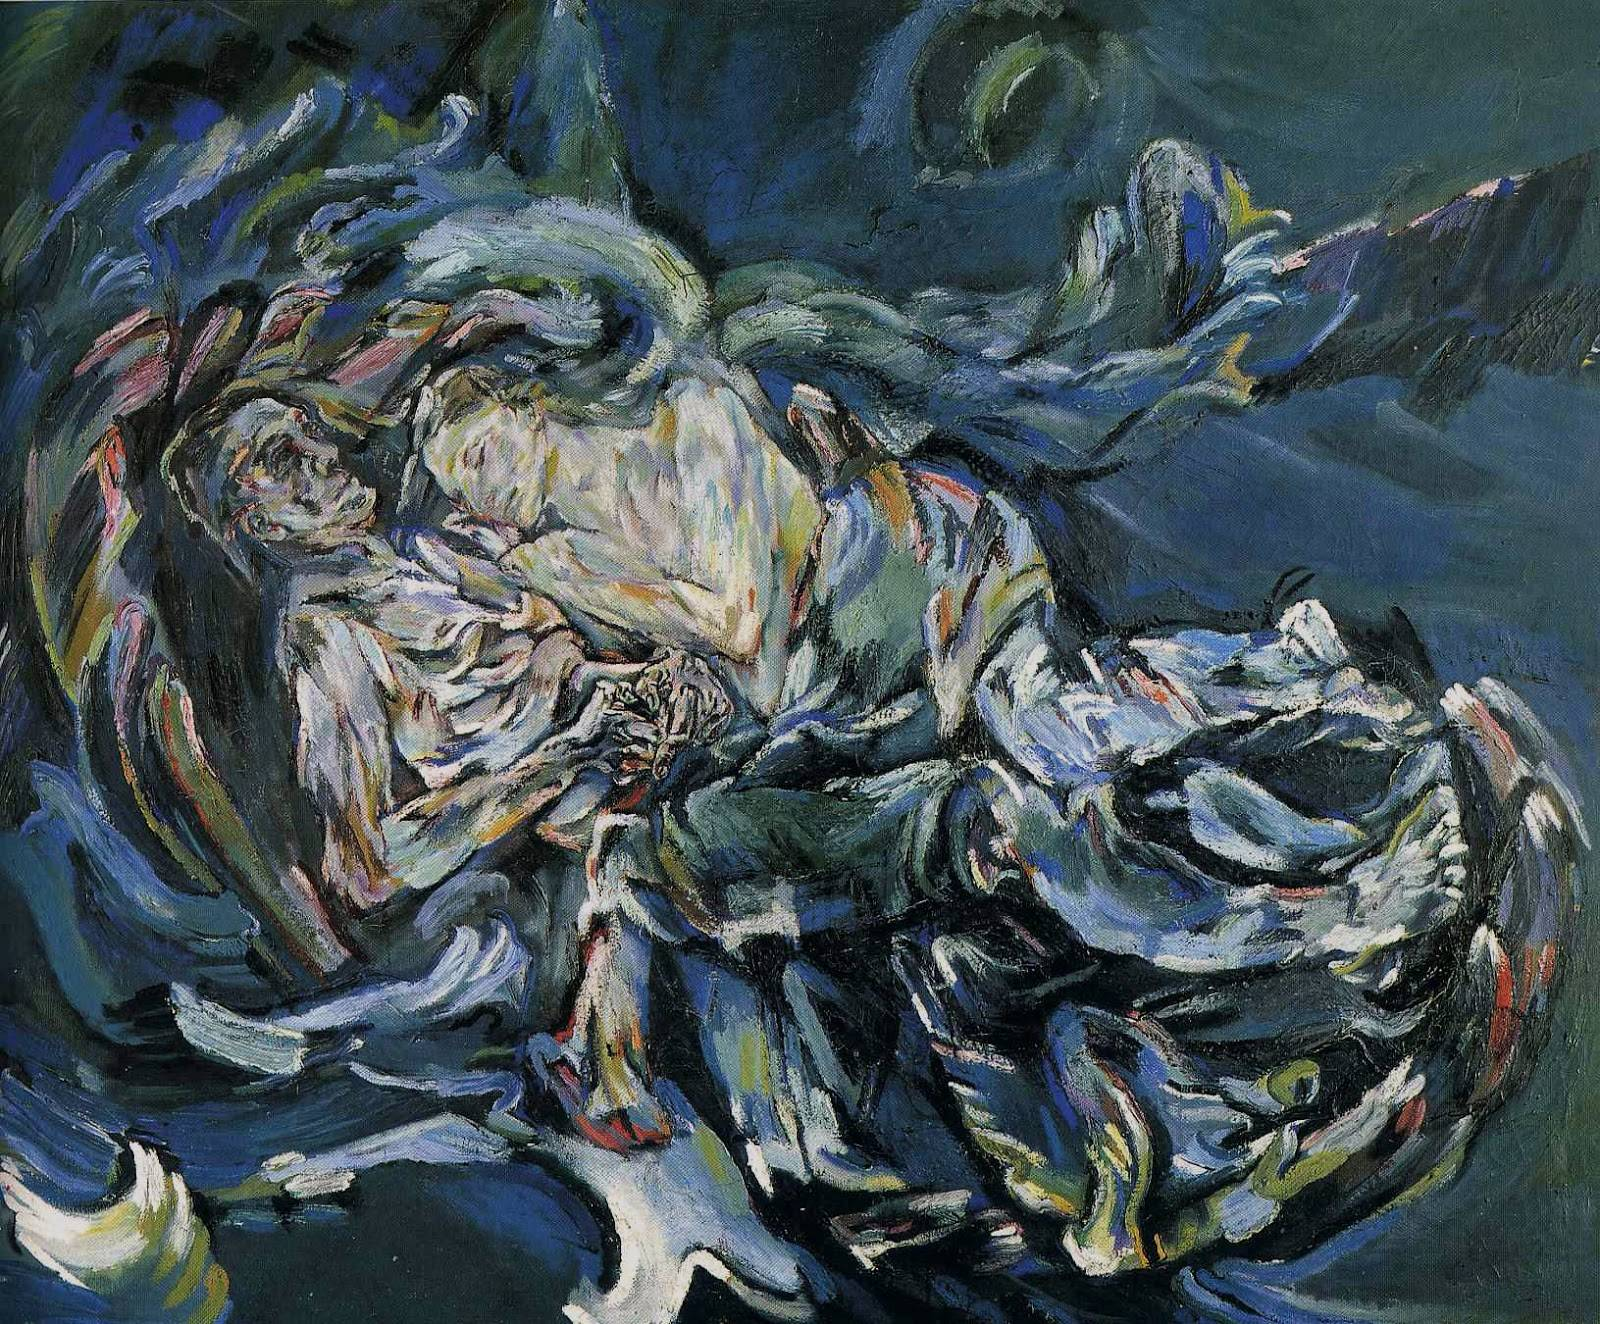 La novia del viento (The bride of the wind, Oskar Kokoschka, 1913-14)